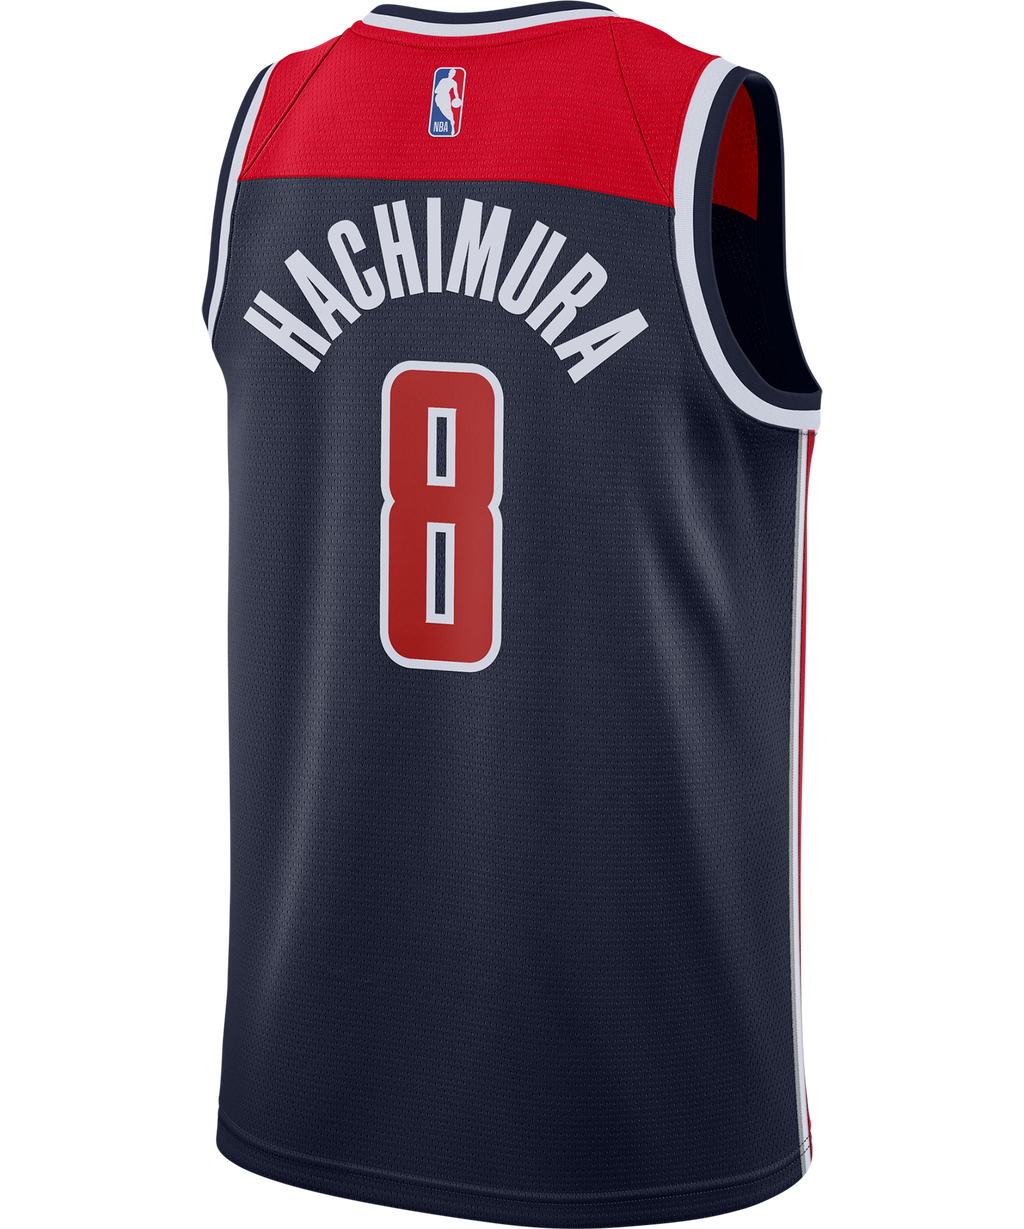 Rui Hachimura Washington Wizards Jordan Statement Edition Jersey 20/21